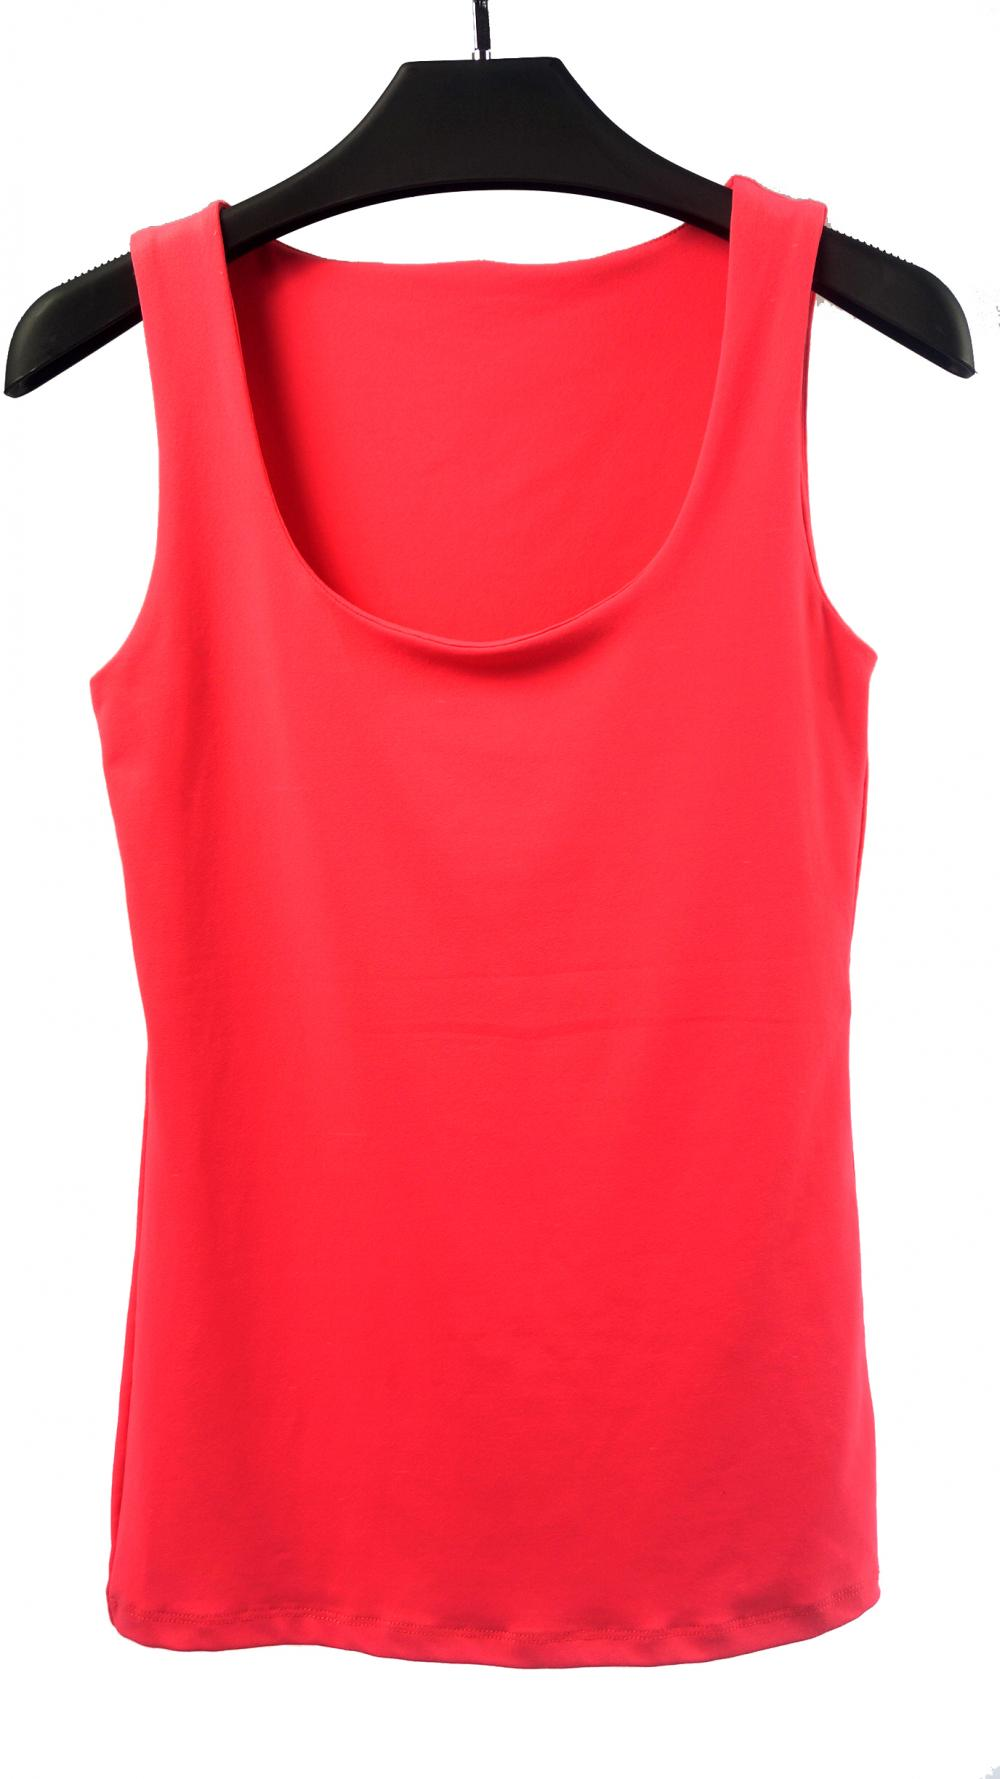 Ladies' Round Neck Tank Top In Solid Color